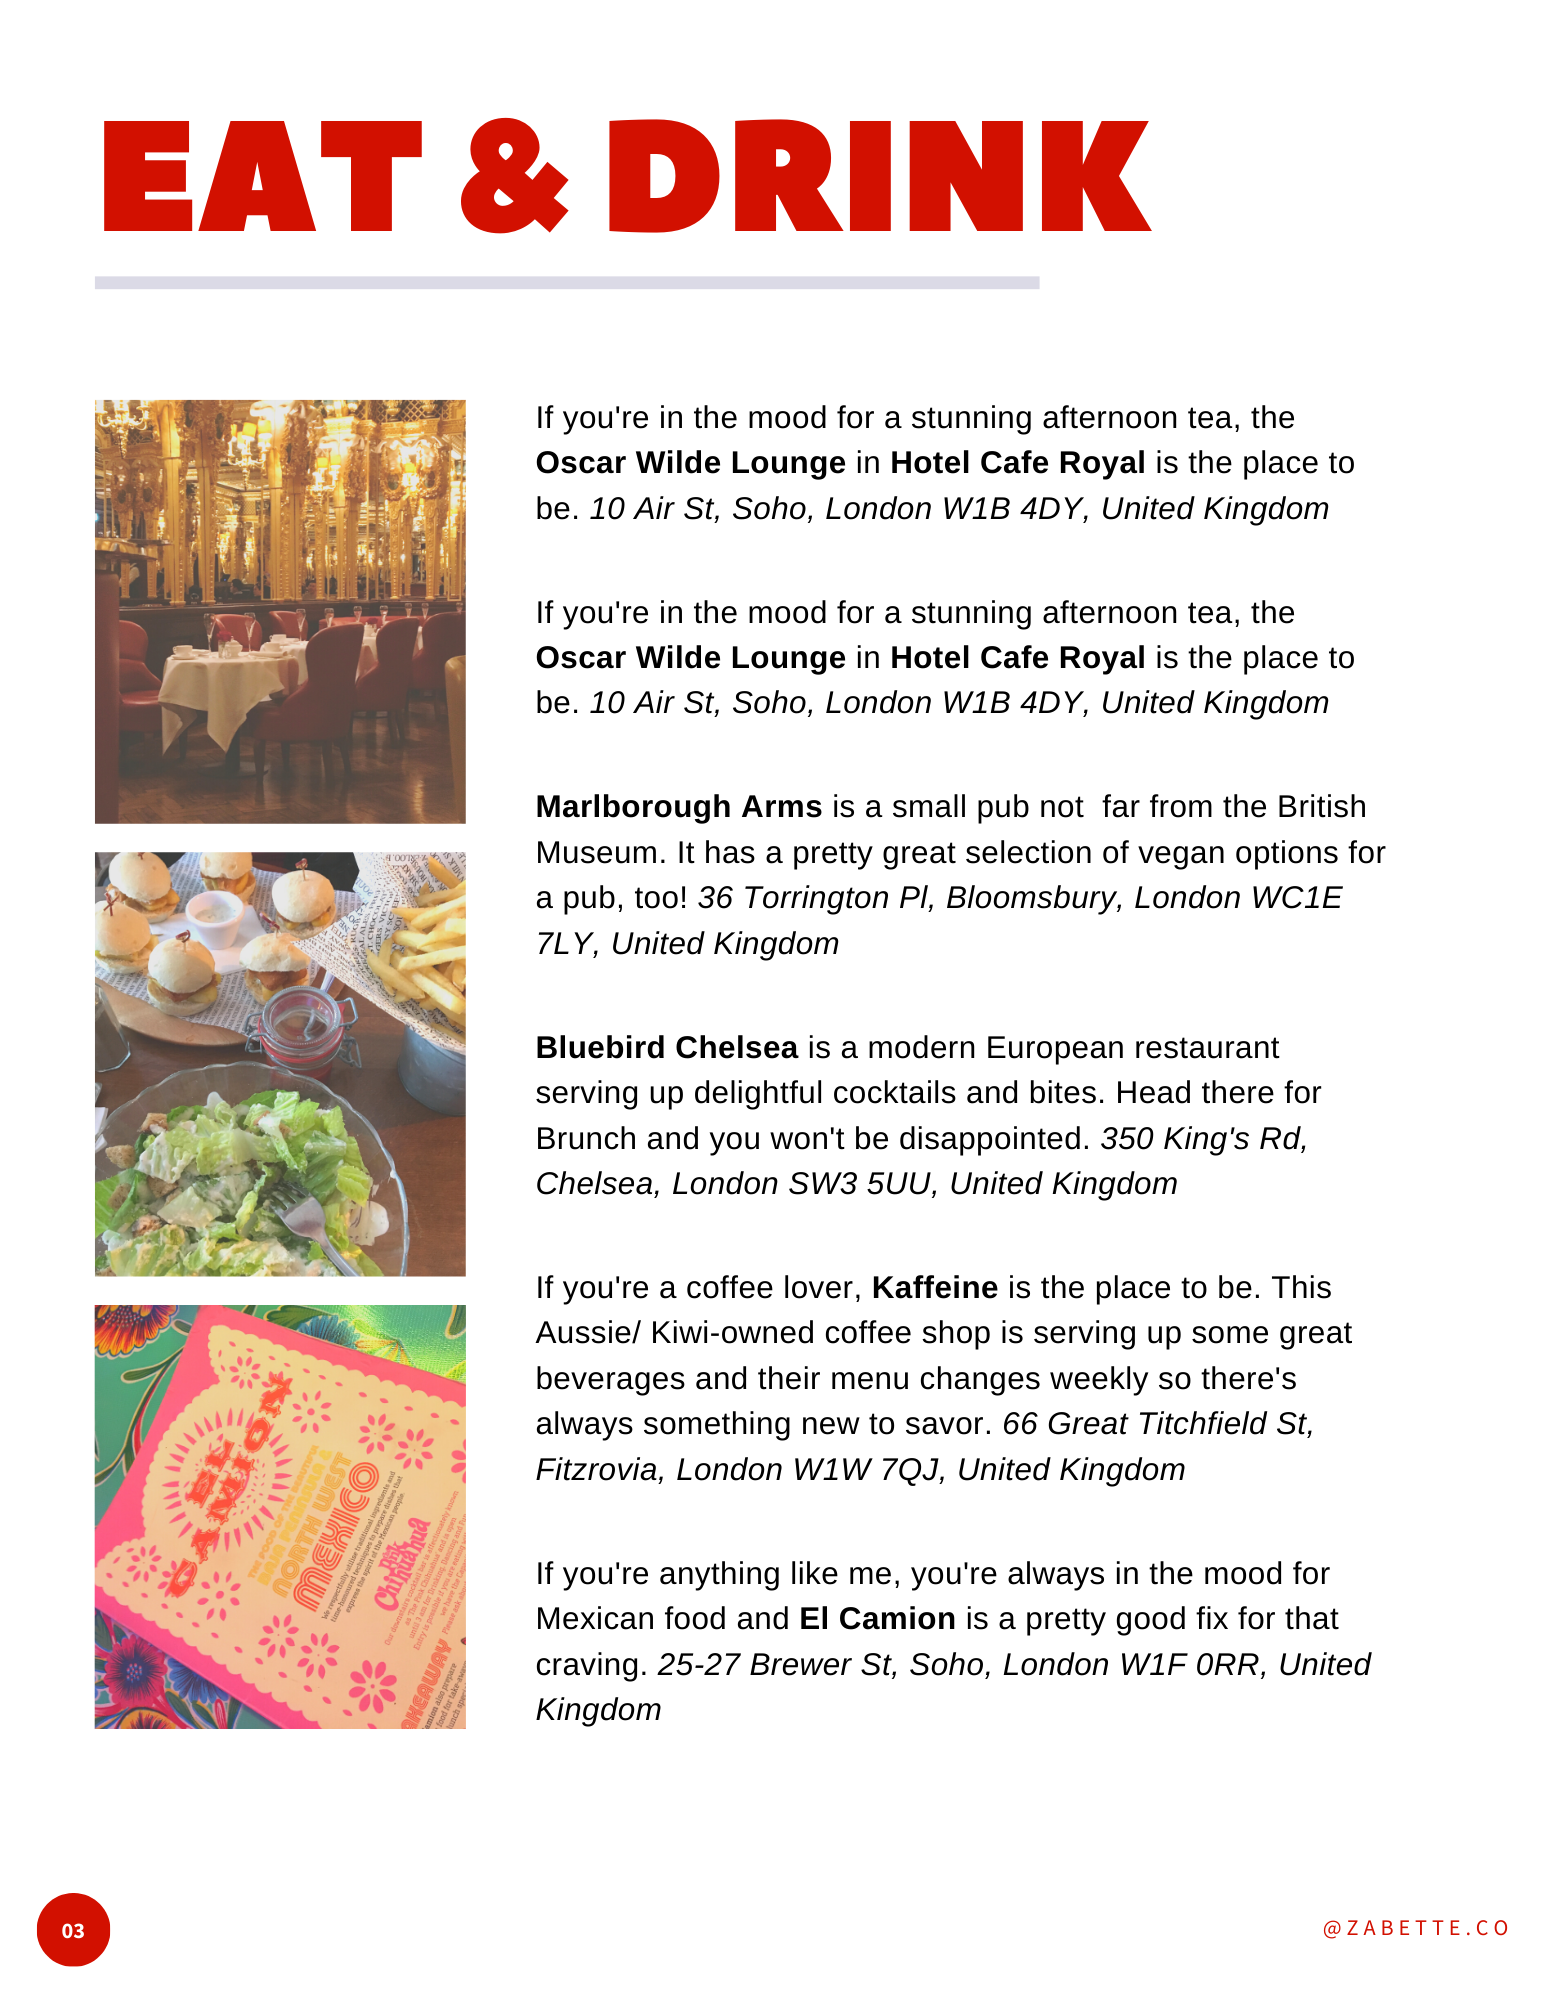 Eat and Drink page of London Travel Guide